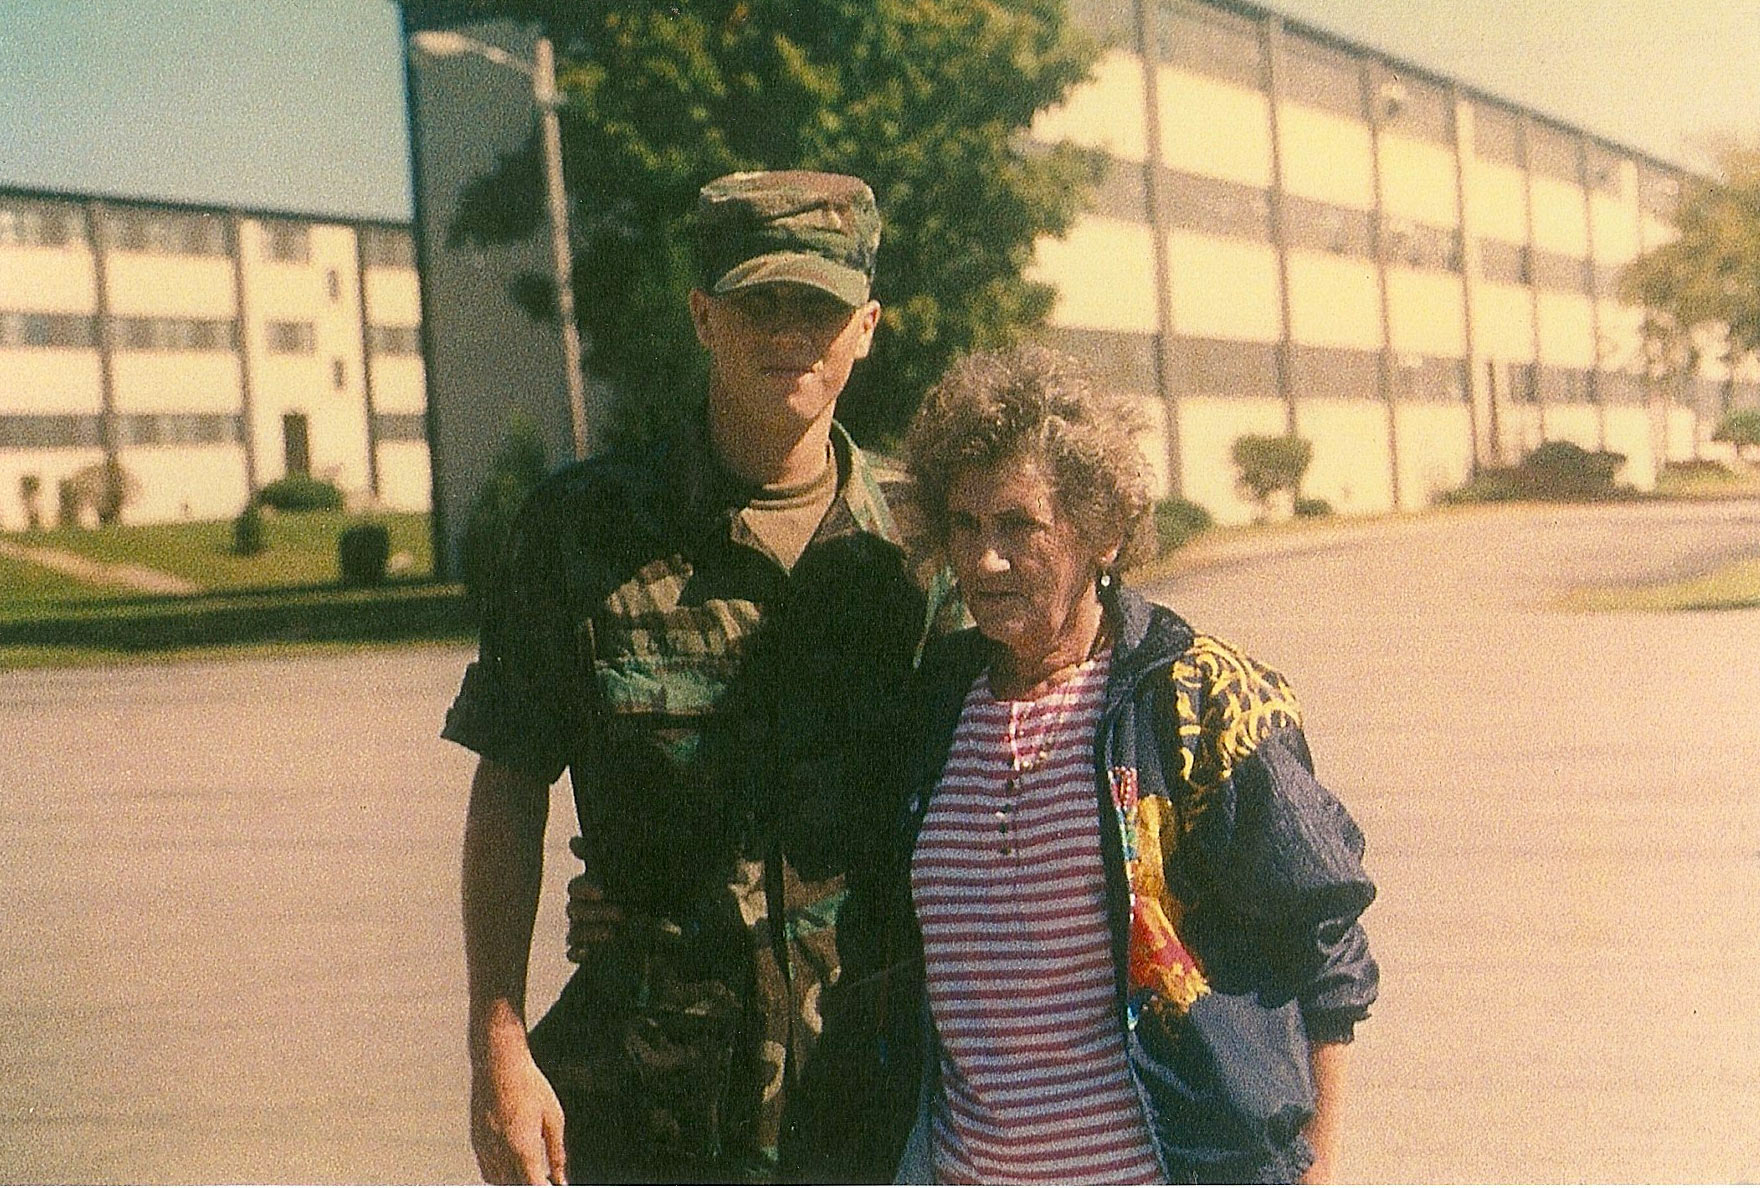 Right after graduating Basic training at Fort Knox, KY.